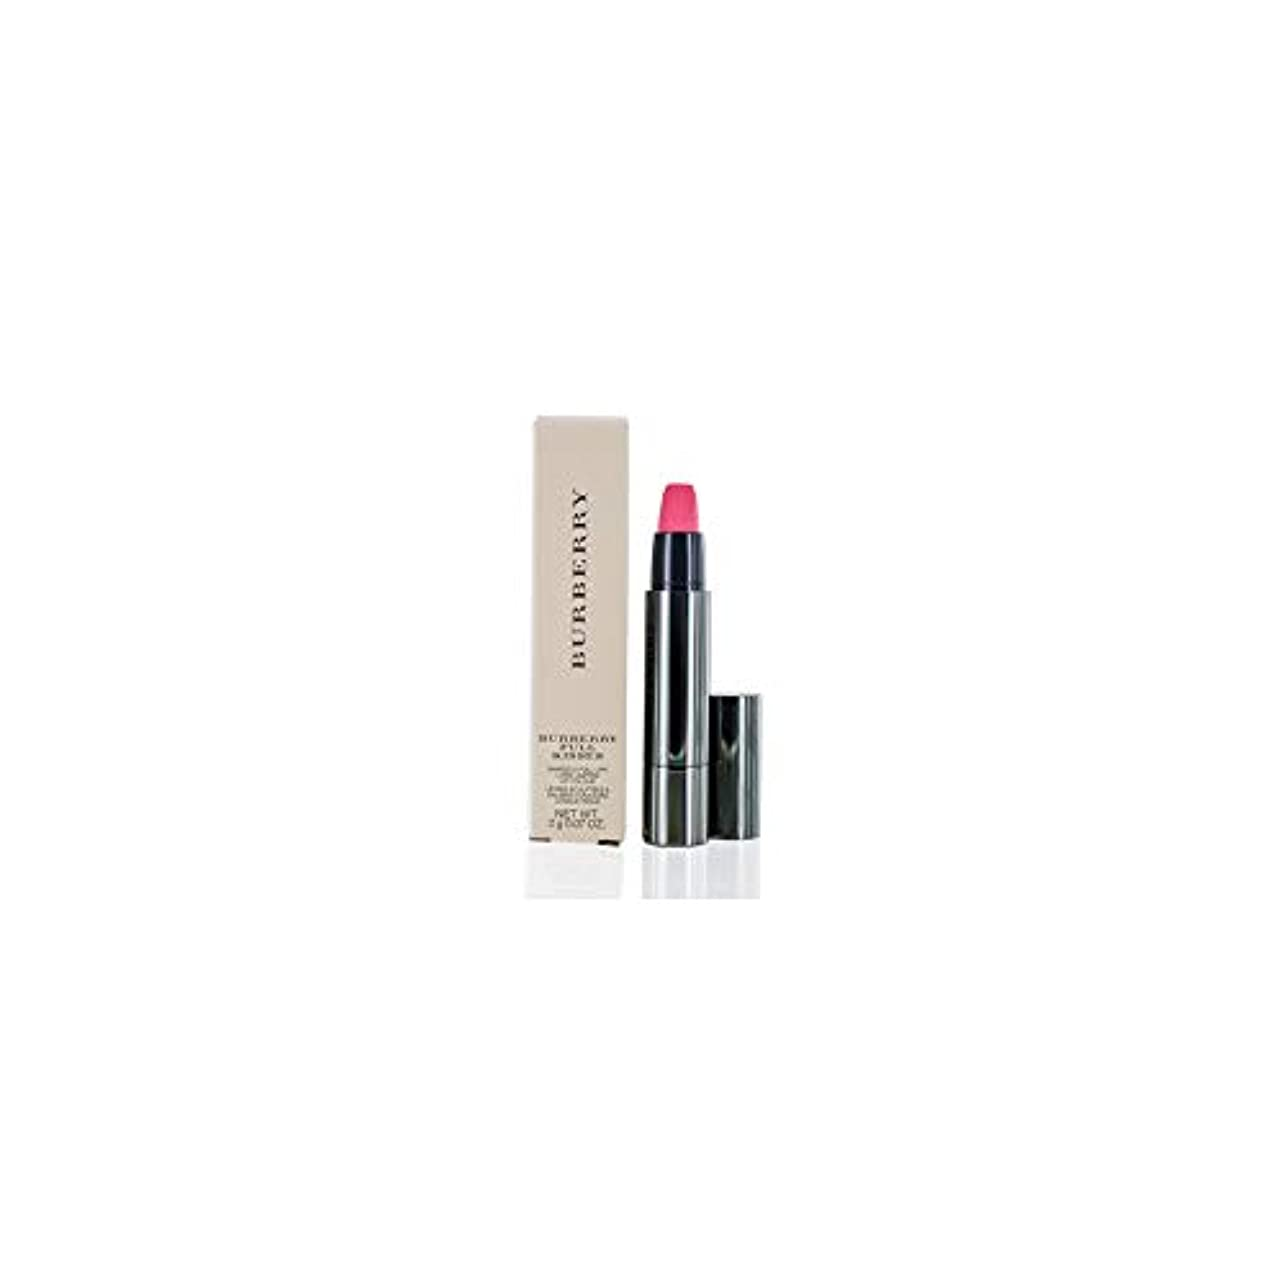 識字取り扱いつまずくバーバリー Burberry Full Kisses Shaped & Full Lips Long Lasting Lip Colour - # No. 513 Peony Rose 2g/0.07oz